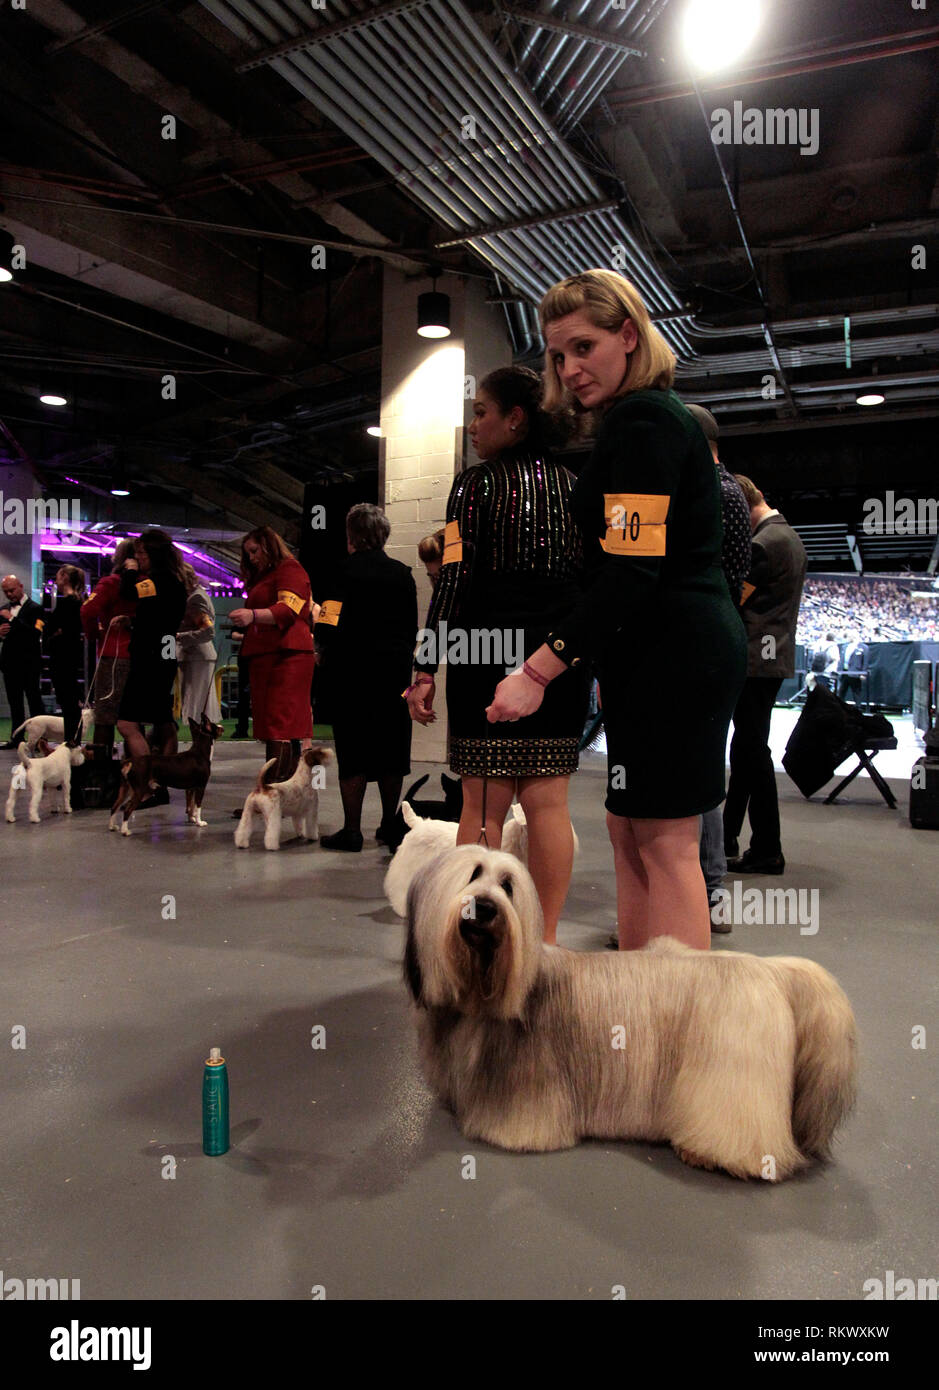 New York, USA. 12th Feb 2019. Westminster Dog Show - New York City, 12 February, 2019:  Terrier Group dogs awaiting their group to be called to the ring at the 143rd Annual Westminster Dog Show, Tuesday evening at Madison Square Garden in New York City. Credit: Adam Stoltman/Alamy Live News Stock Photo